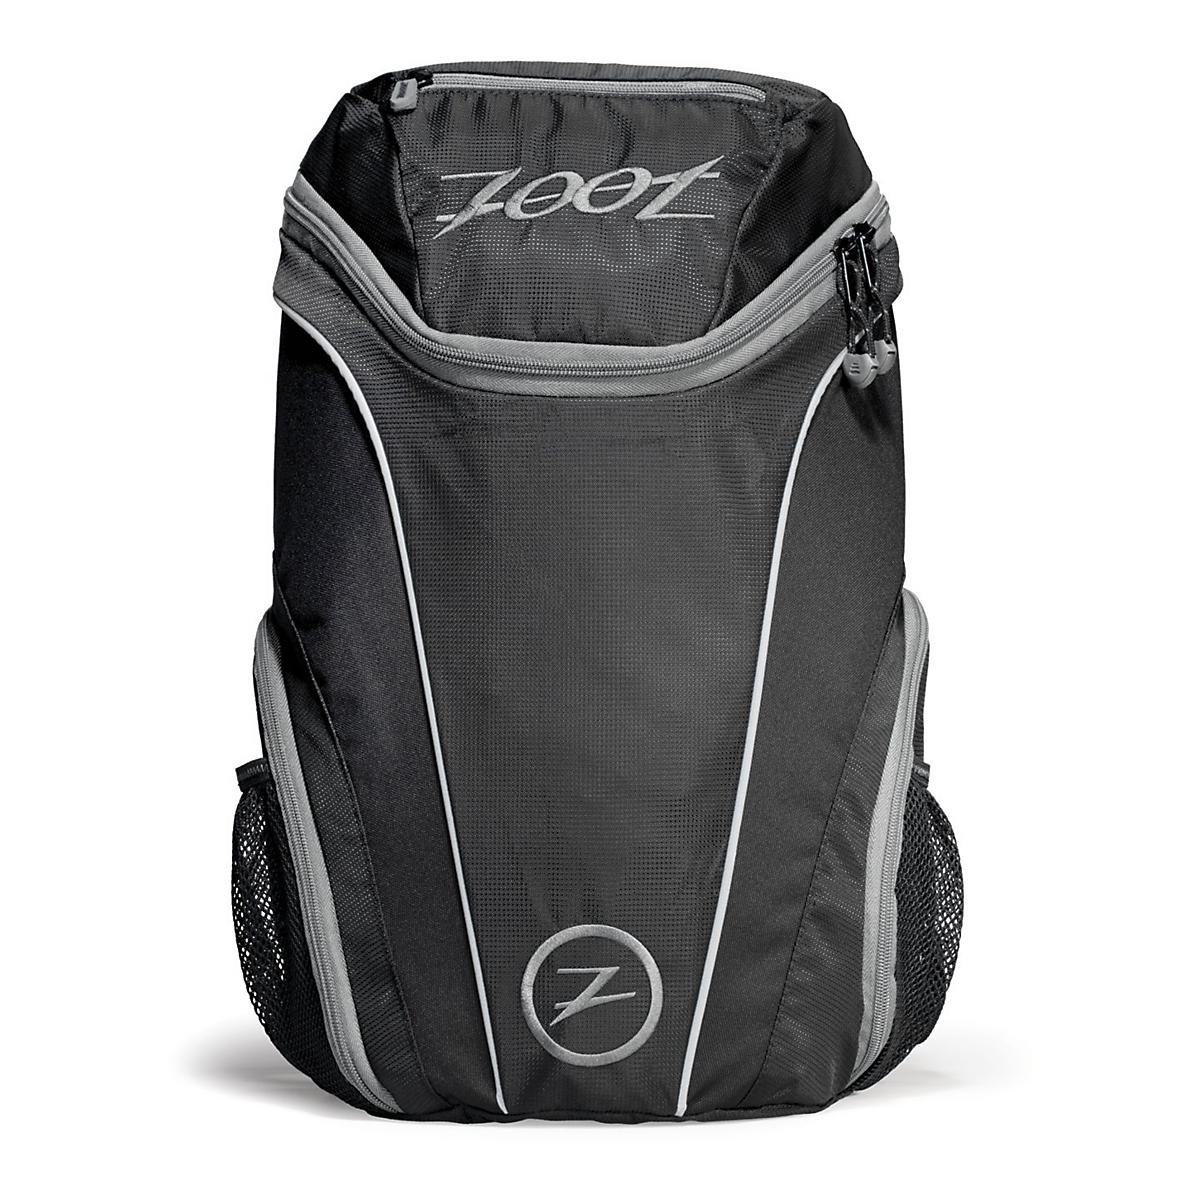 Zoot�Transition Bag 2.0